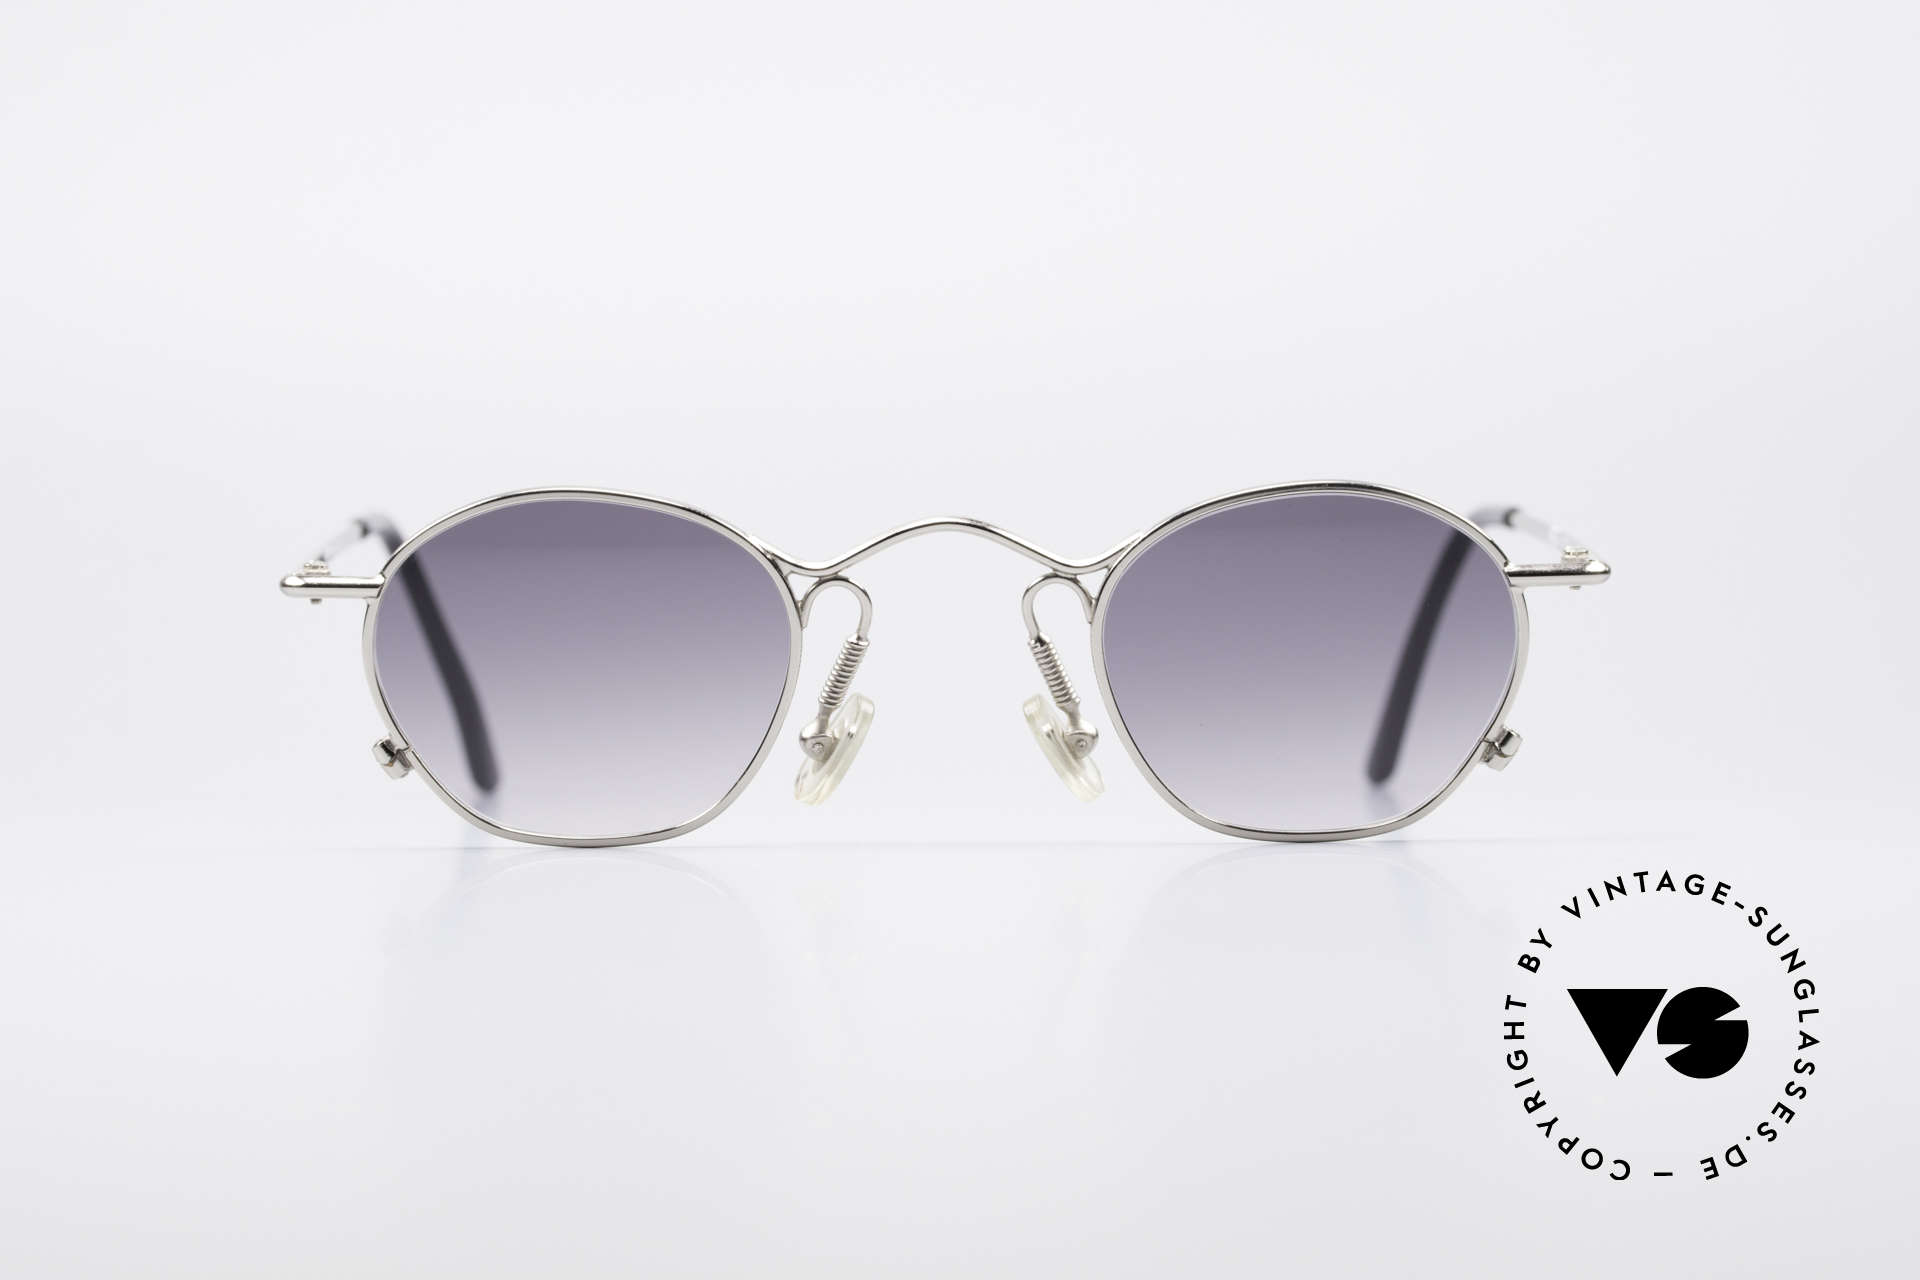 IDC 101 True Vintage No Retro Shades, high-end quality shades and very pleasant to wear, Made for Men and Women